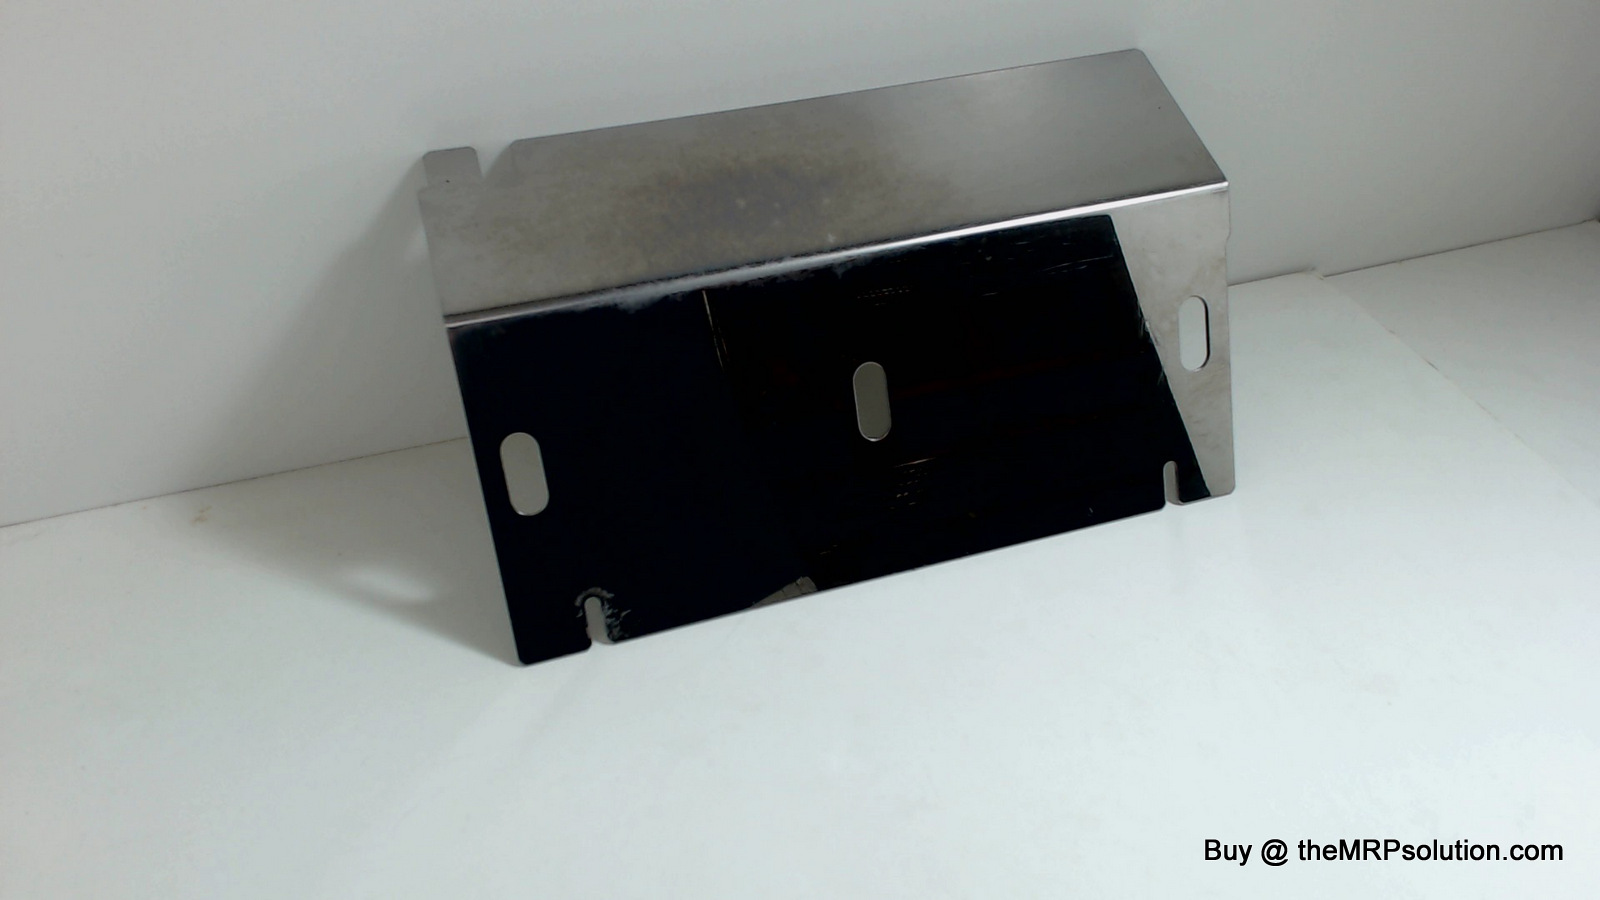 ZEBRA 46342 FRONT COVER, 170XI II Refurbished